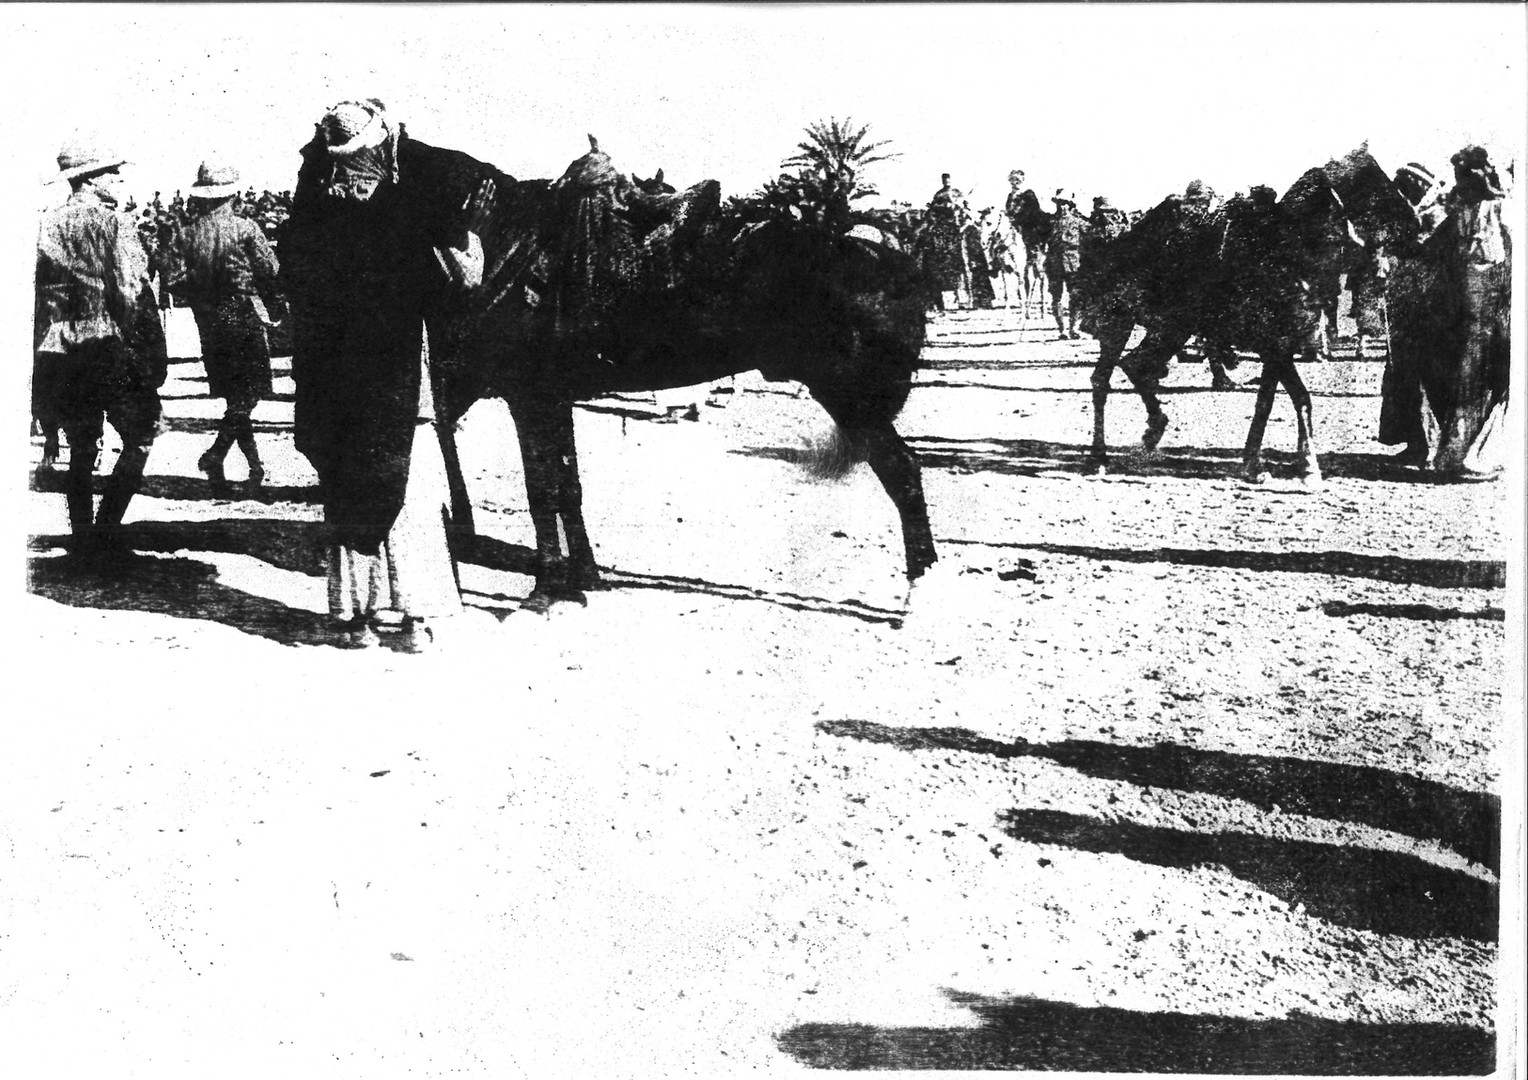 Basrah Horse and Cattle Show 1918